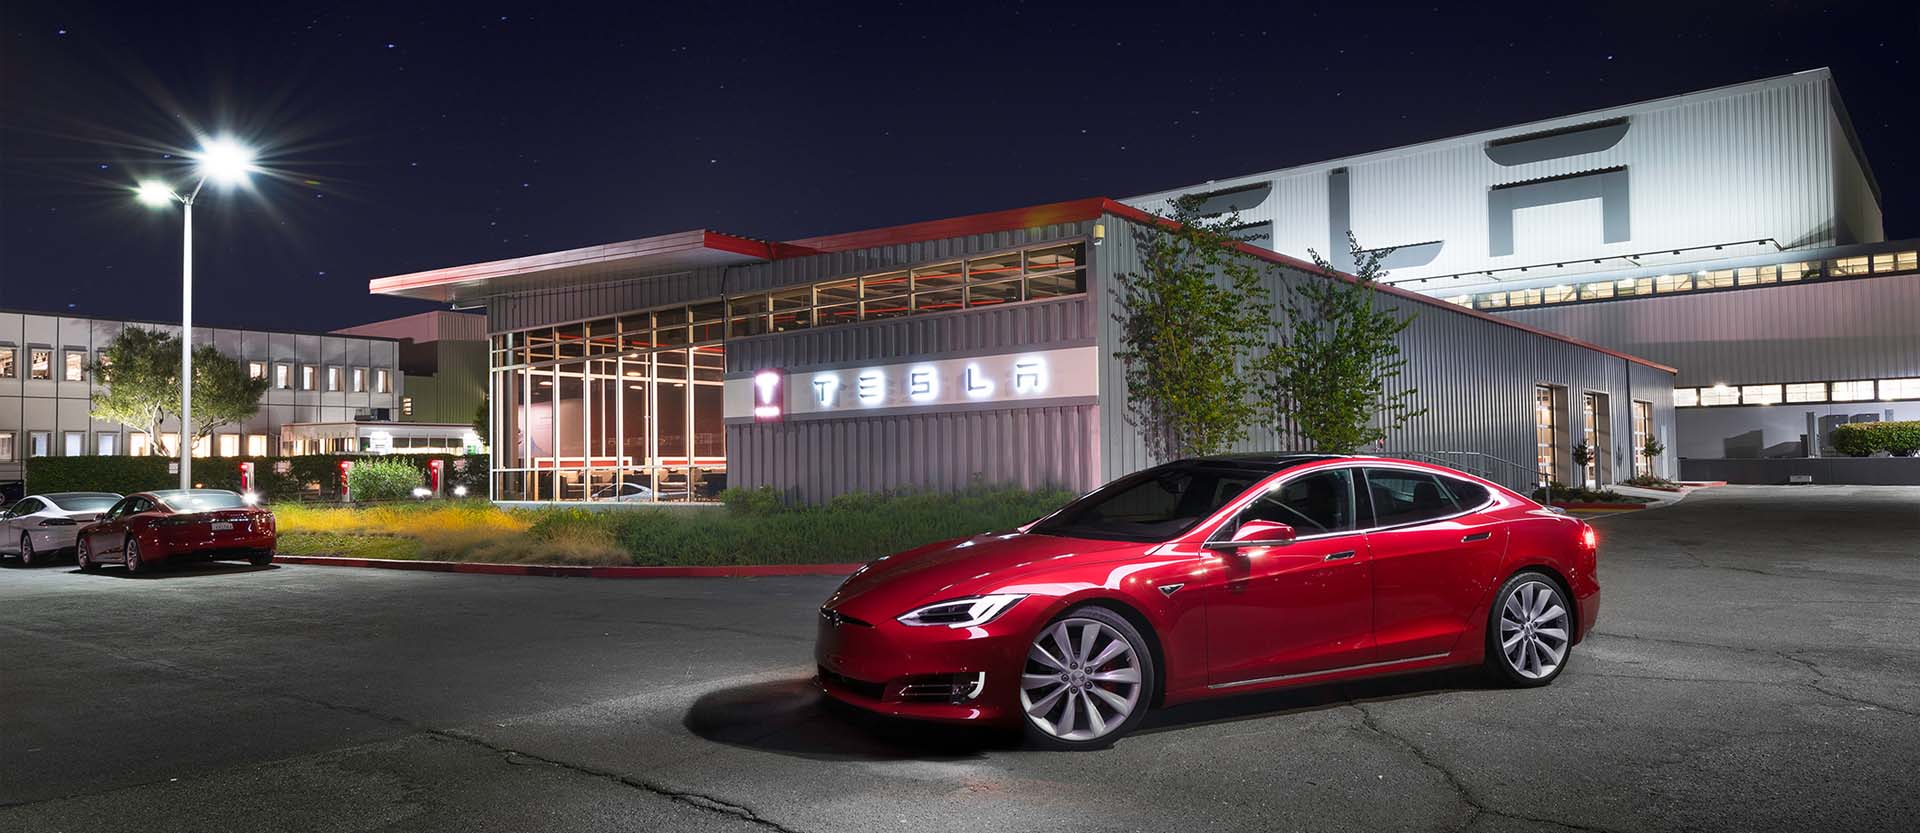 Tesla Model S Durability Cars With 250k And 300k Miles Still Humming Along Hily